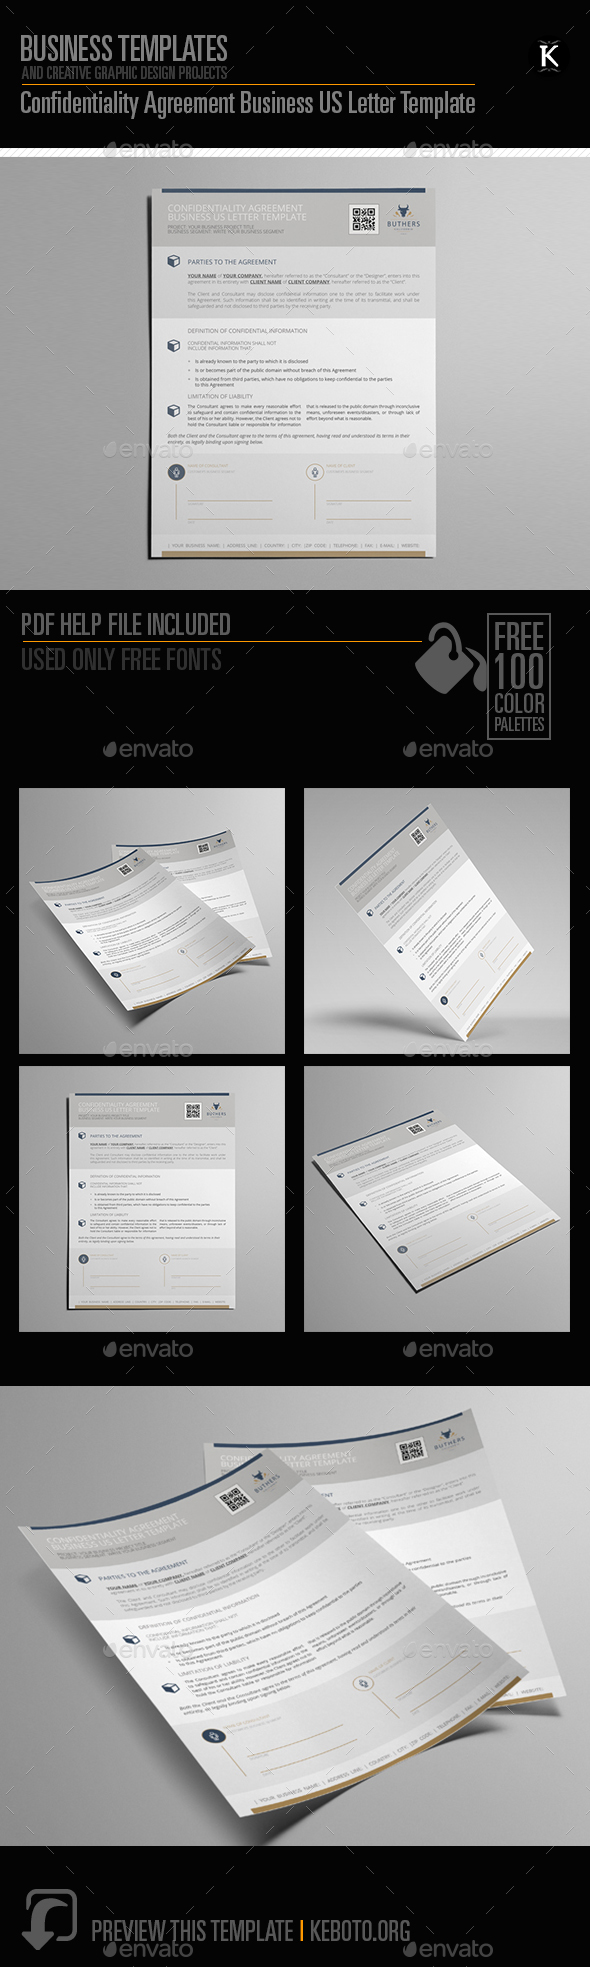 Confidentiality Agreement Business US Letter Template - Miscellaneous Print Templates